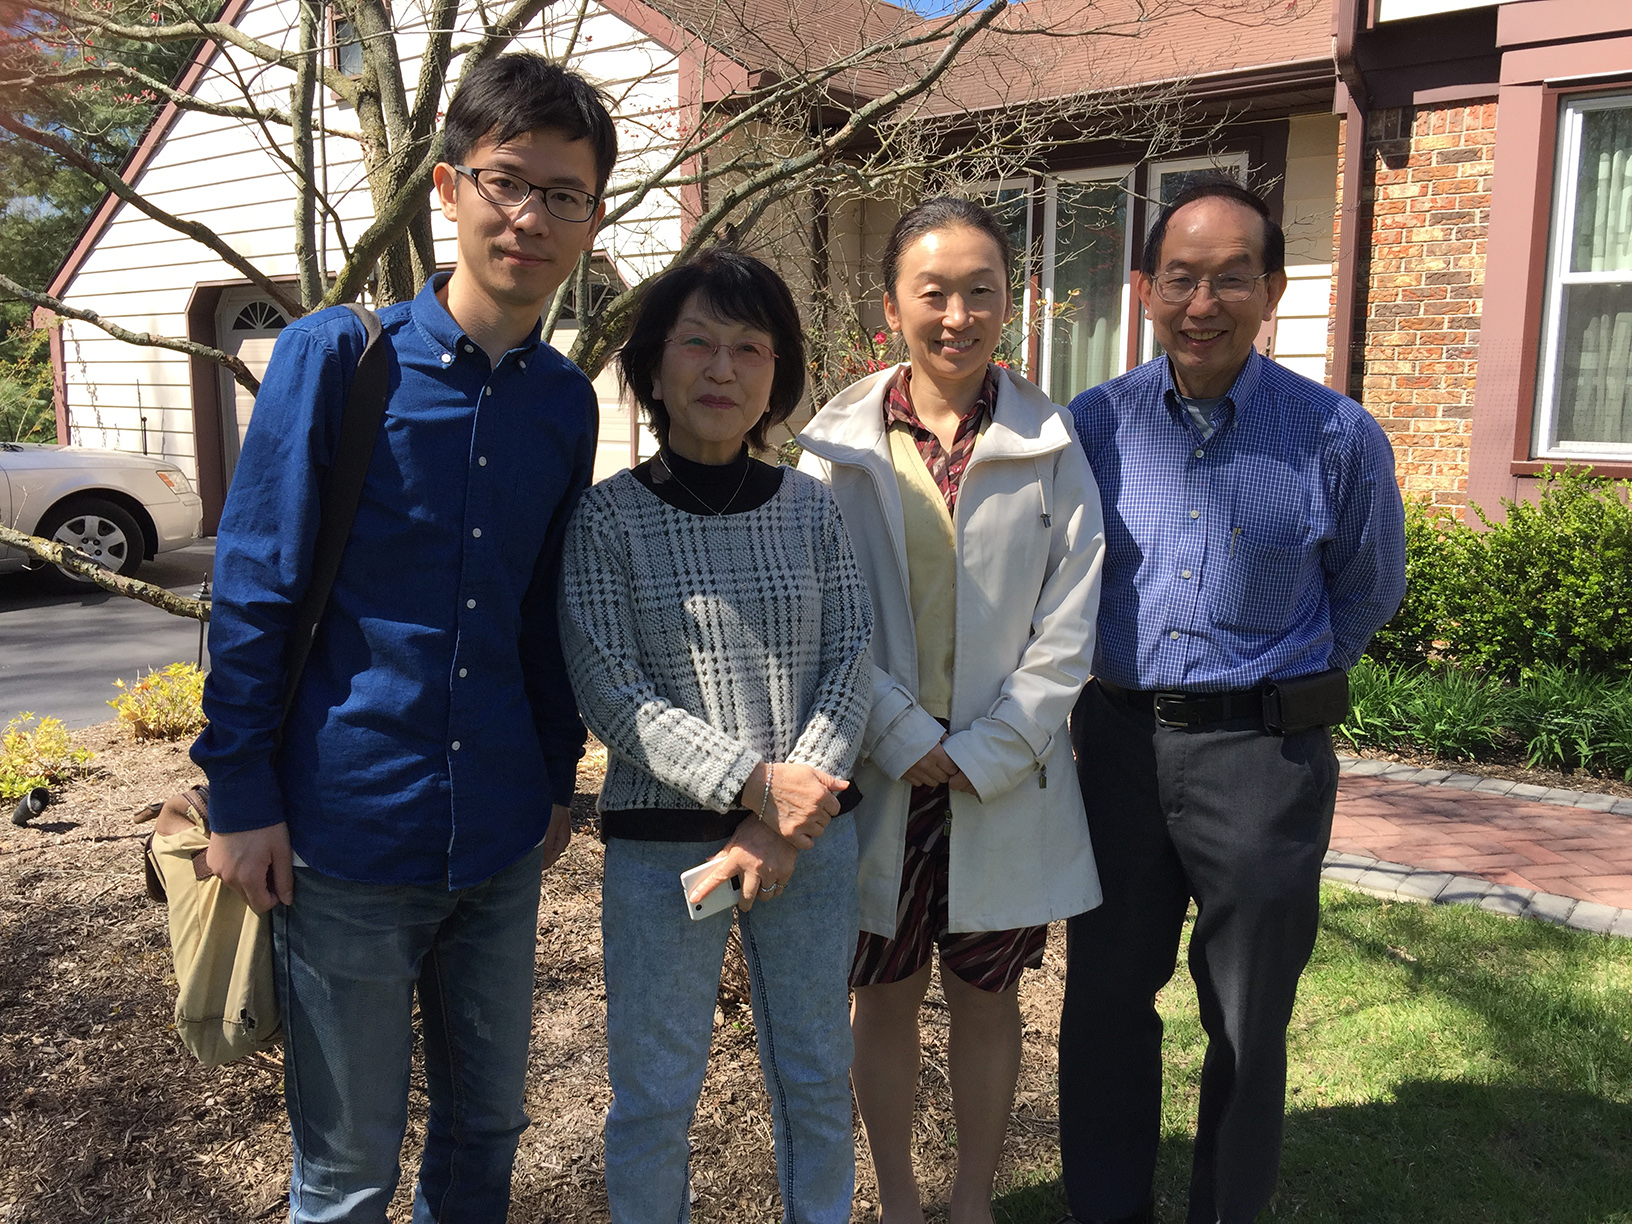 Left-right: Cheng Fang, Tamaki Imanishi, Kei Imanishi, Don Tow, who helped organize the interview